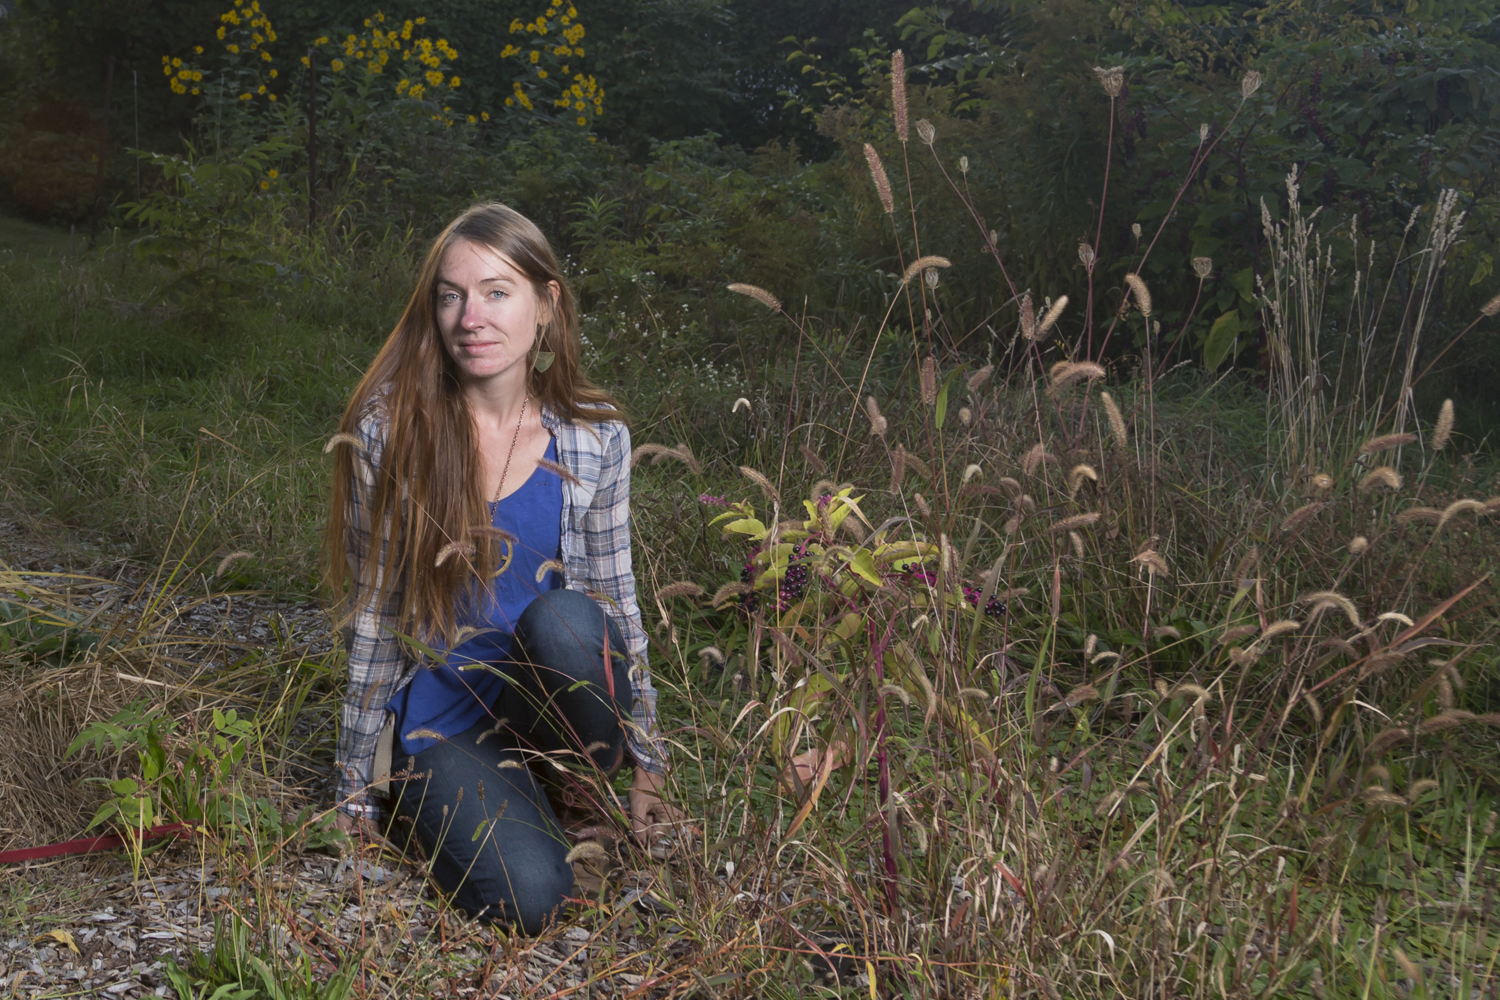 Lisa Barker, Director, Seedfolk City Farm, poses for a portrait in the field behind their urban farm site at the Gandhi Institute, Rochester, N.Y.